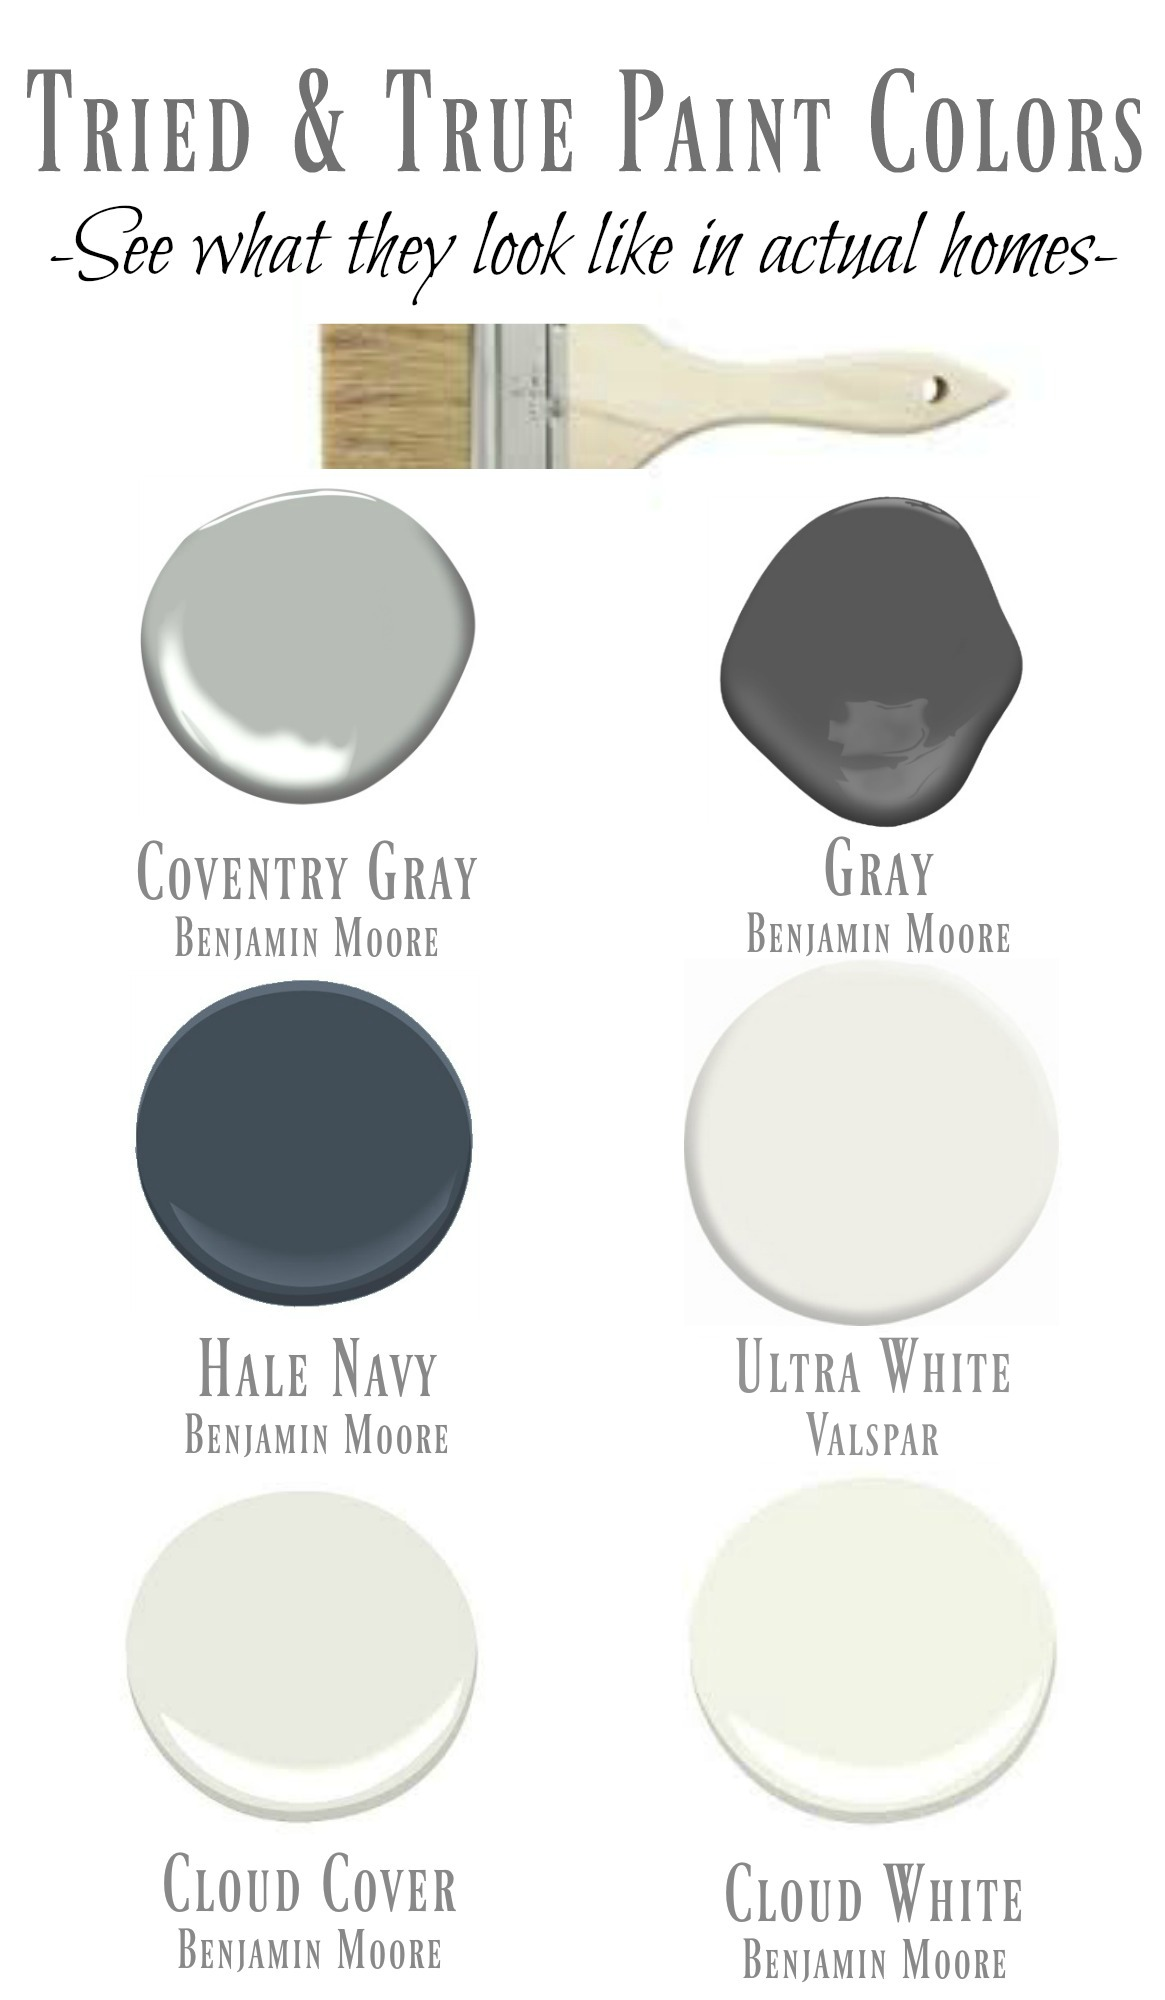 Friday Favorites starts with My Tried & True Paint Colors Nesting